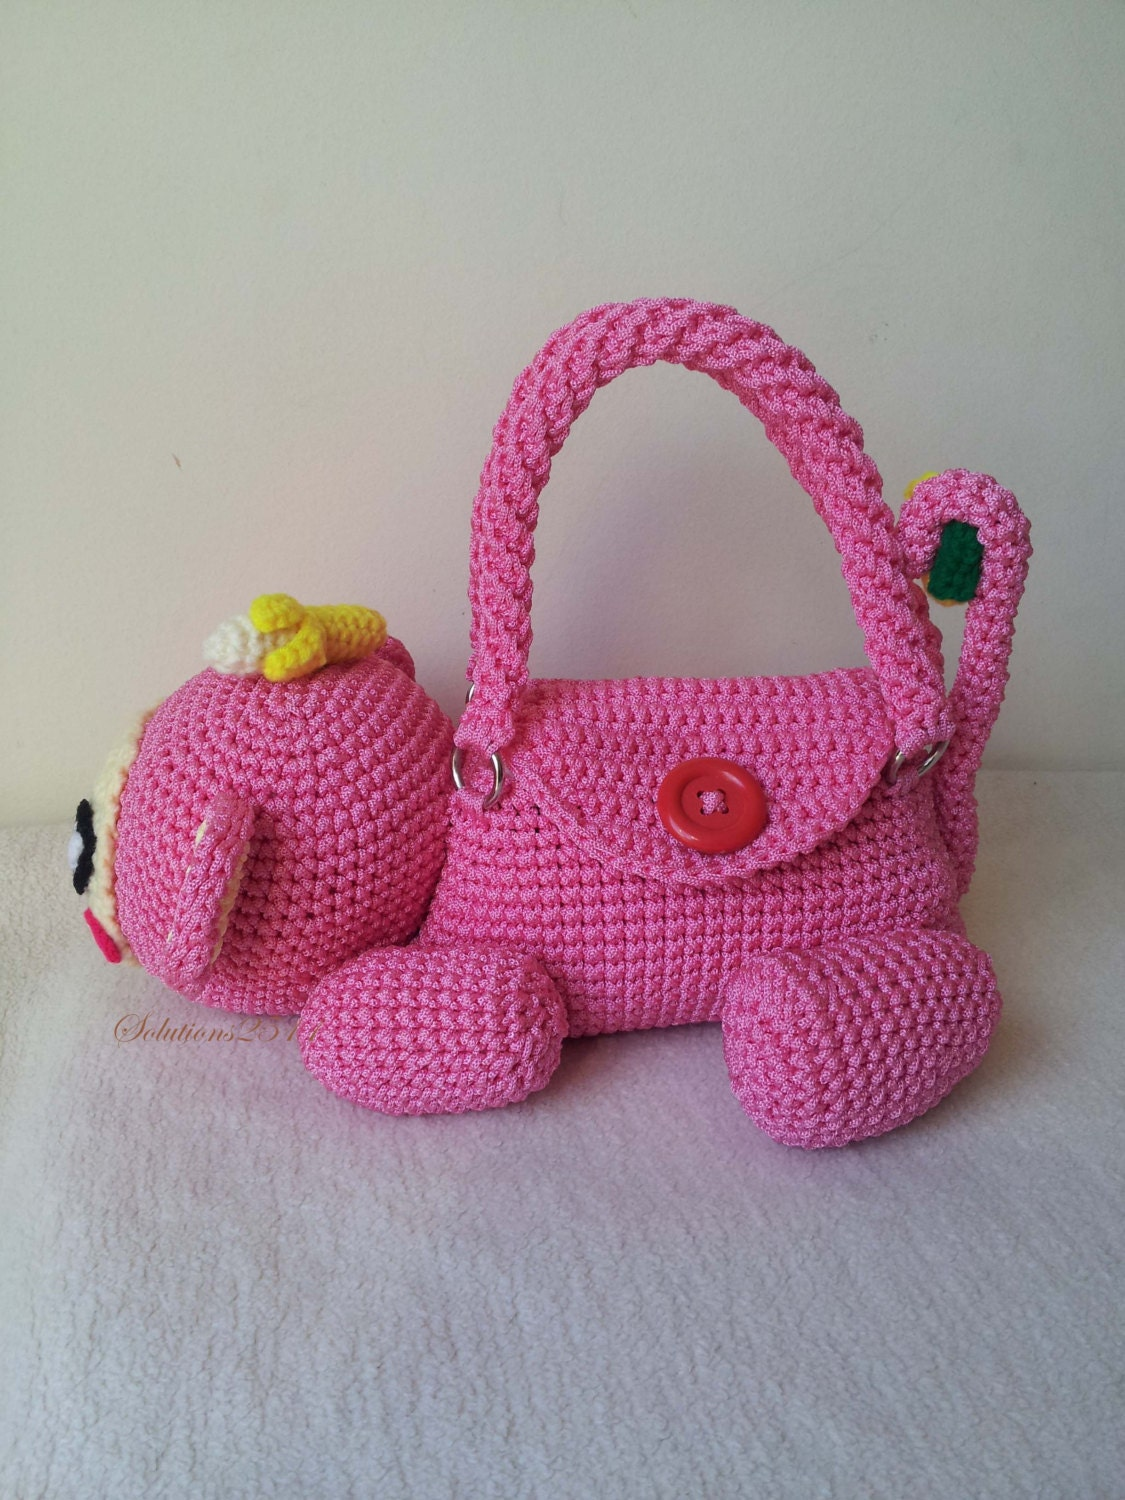 Monkey crochet handbag birthday gift perfect to every